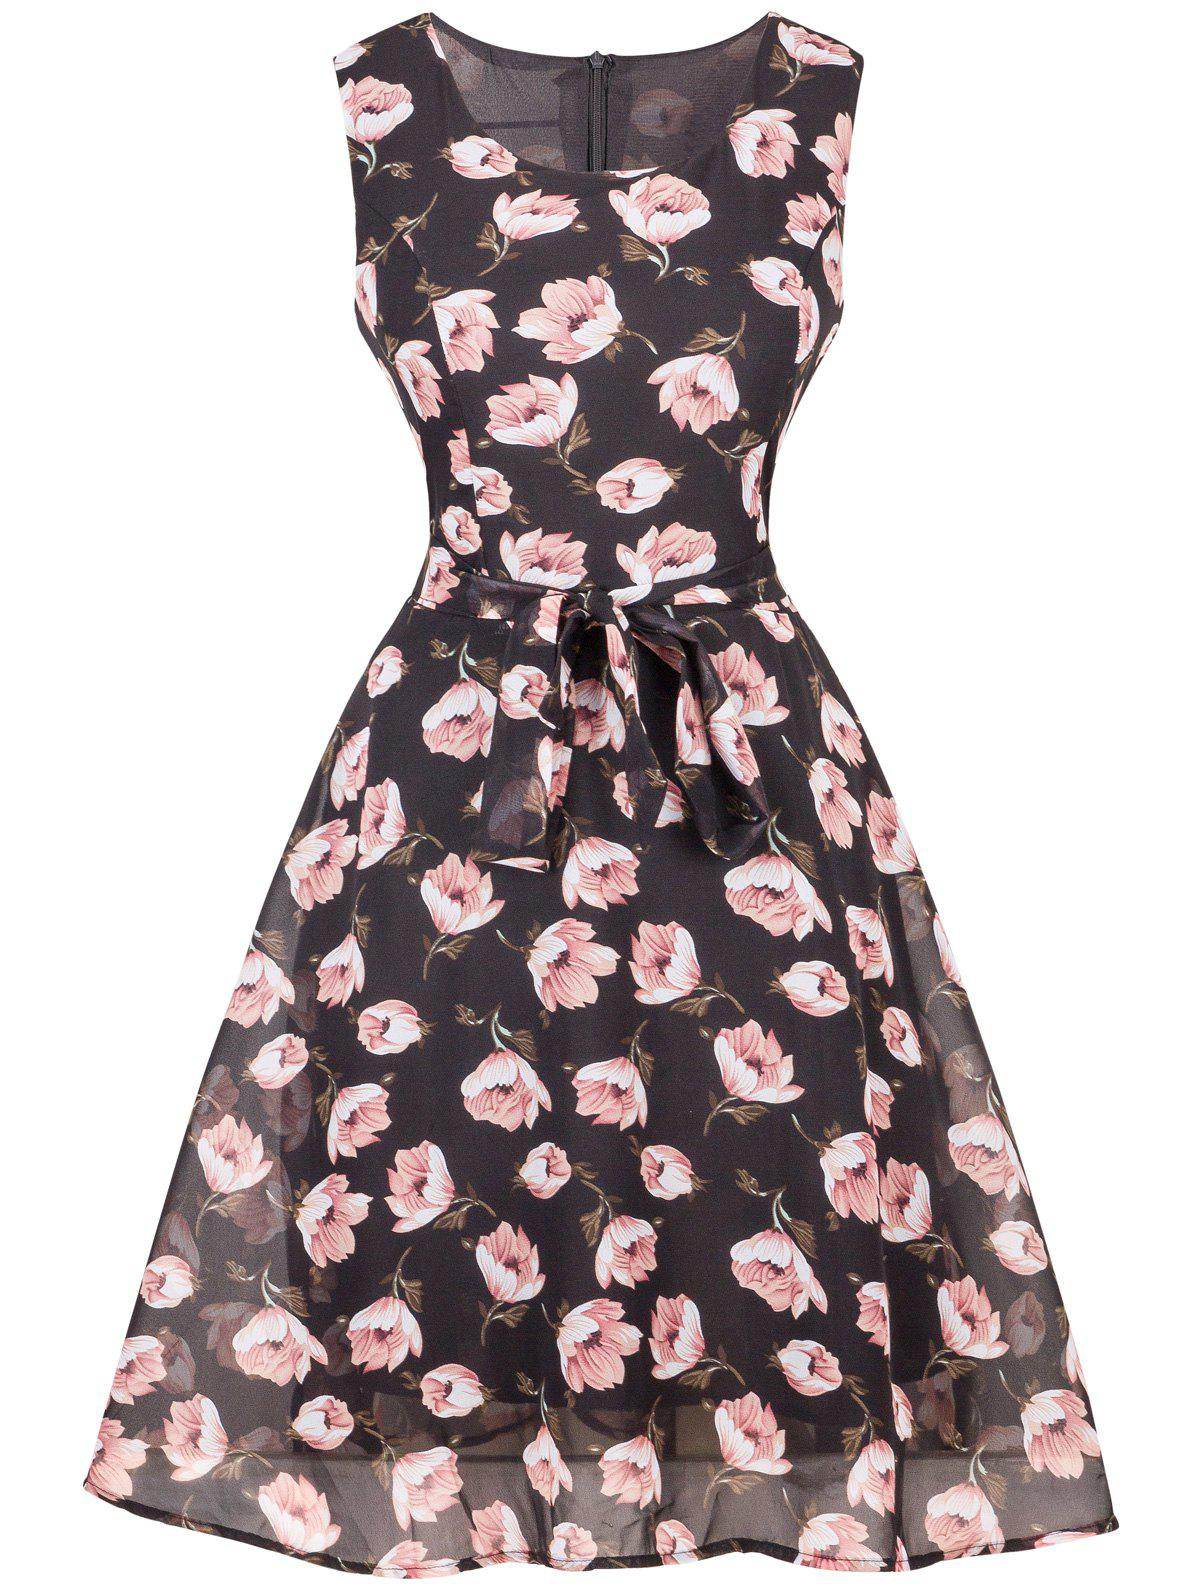 Floral Chiffon Knee Length Belted Flare Dress - BLACK S